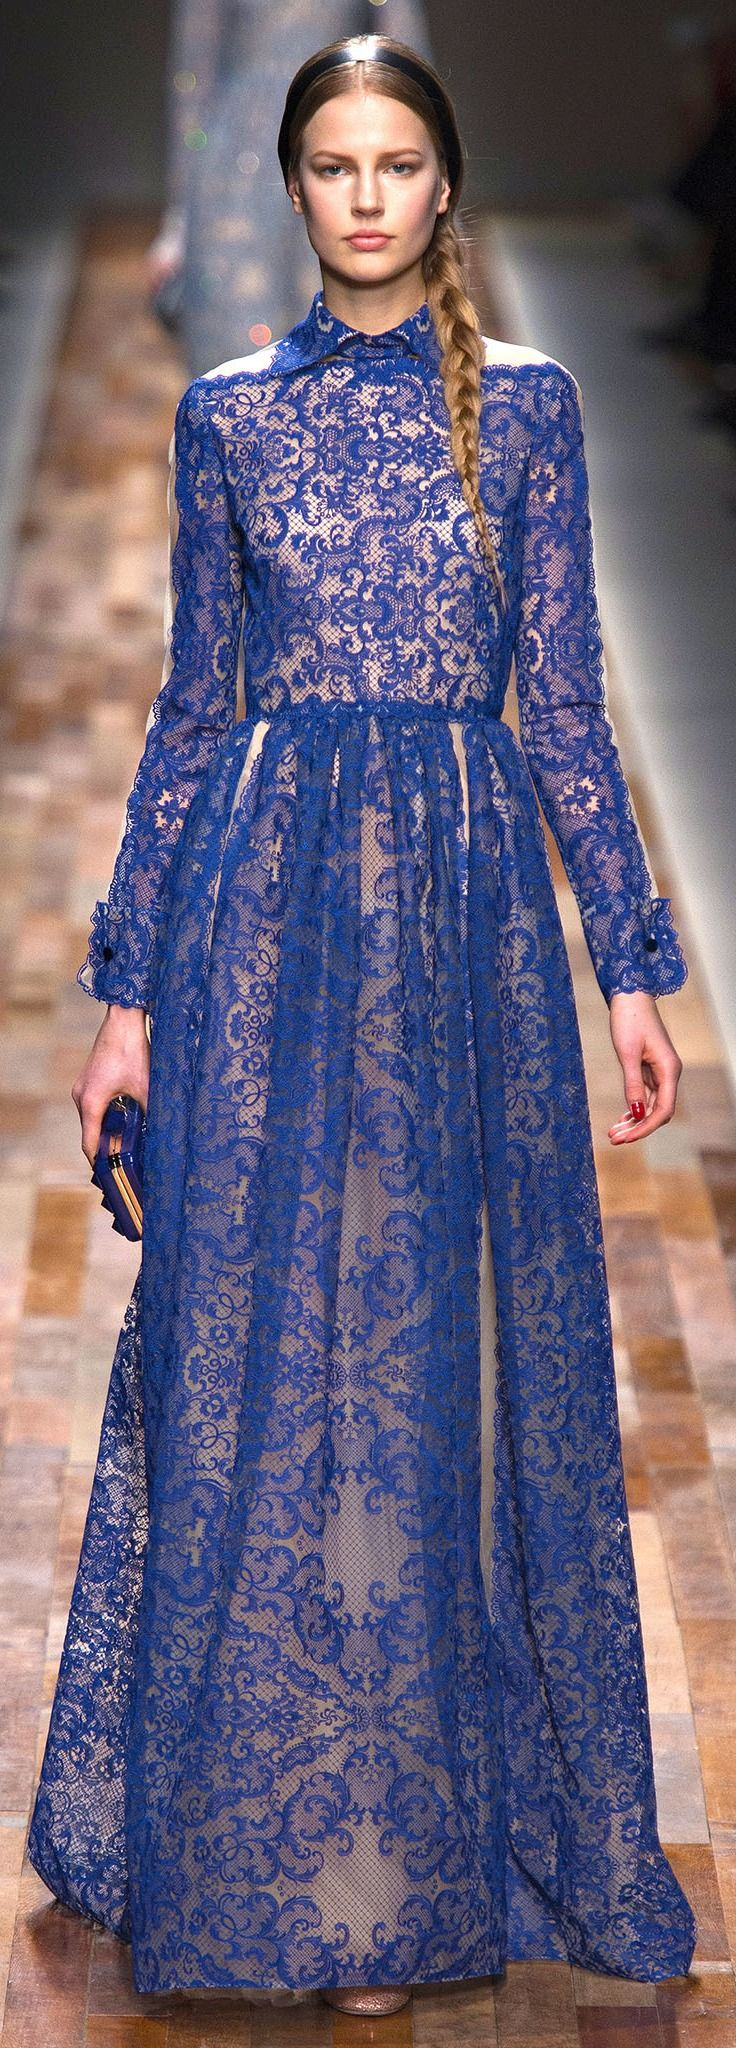 Fall 2013 Ready-to-Wear Valentino